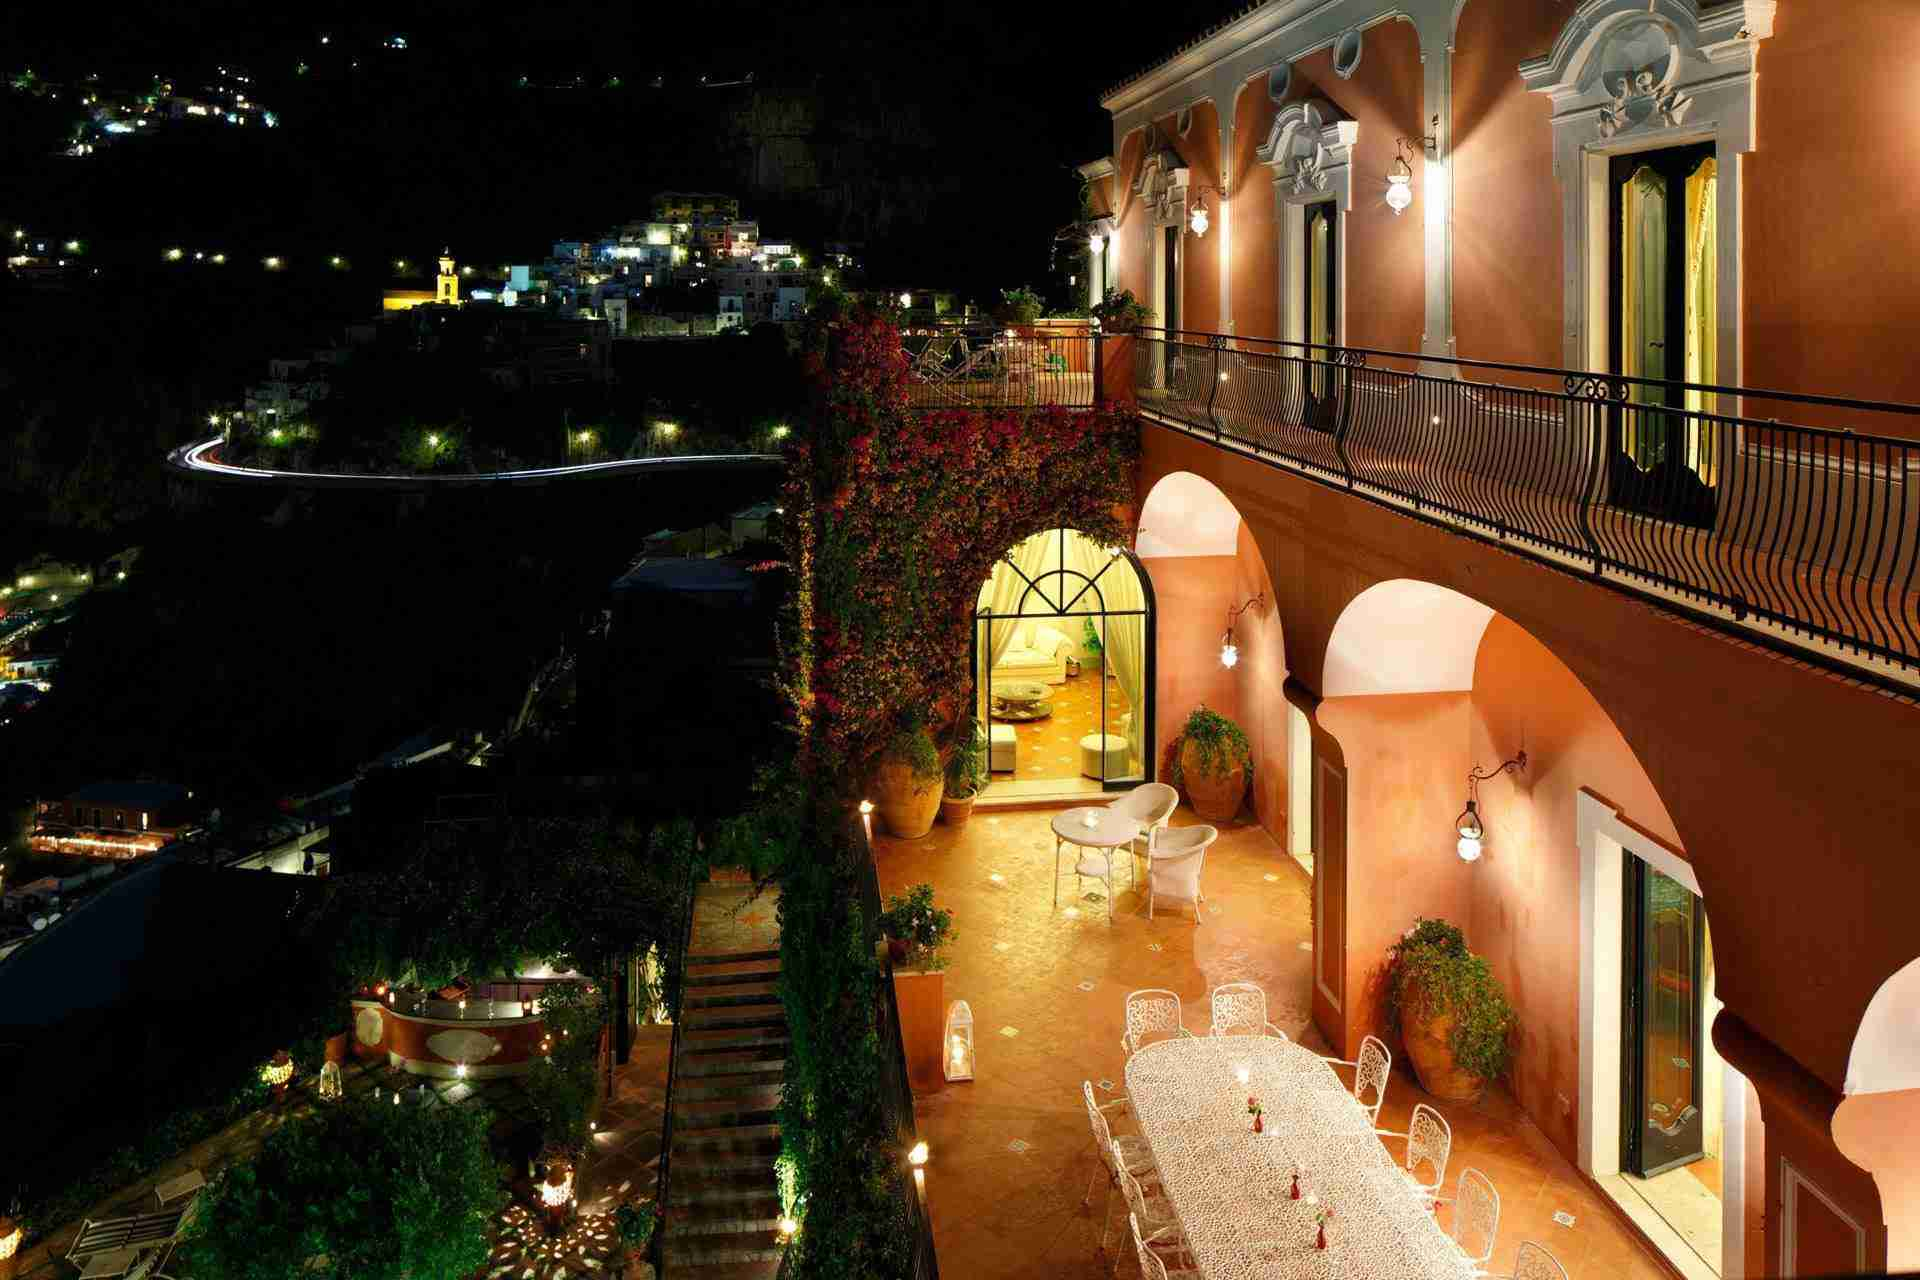 35 Positano night view